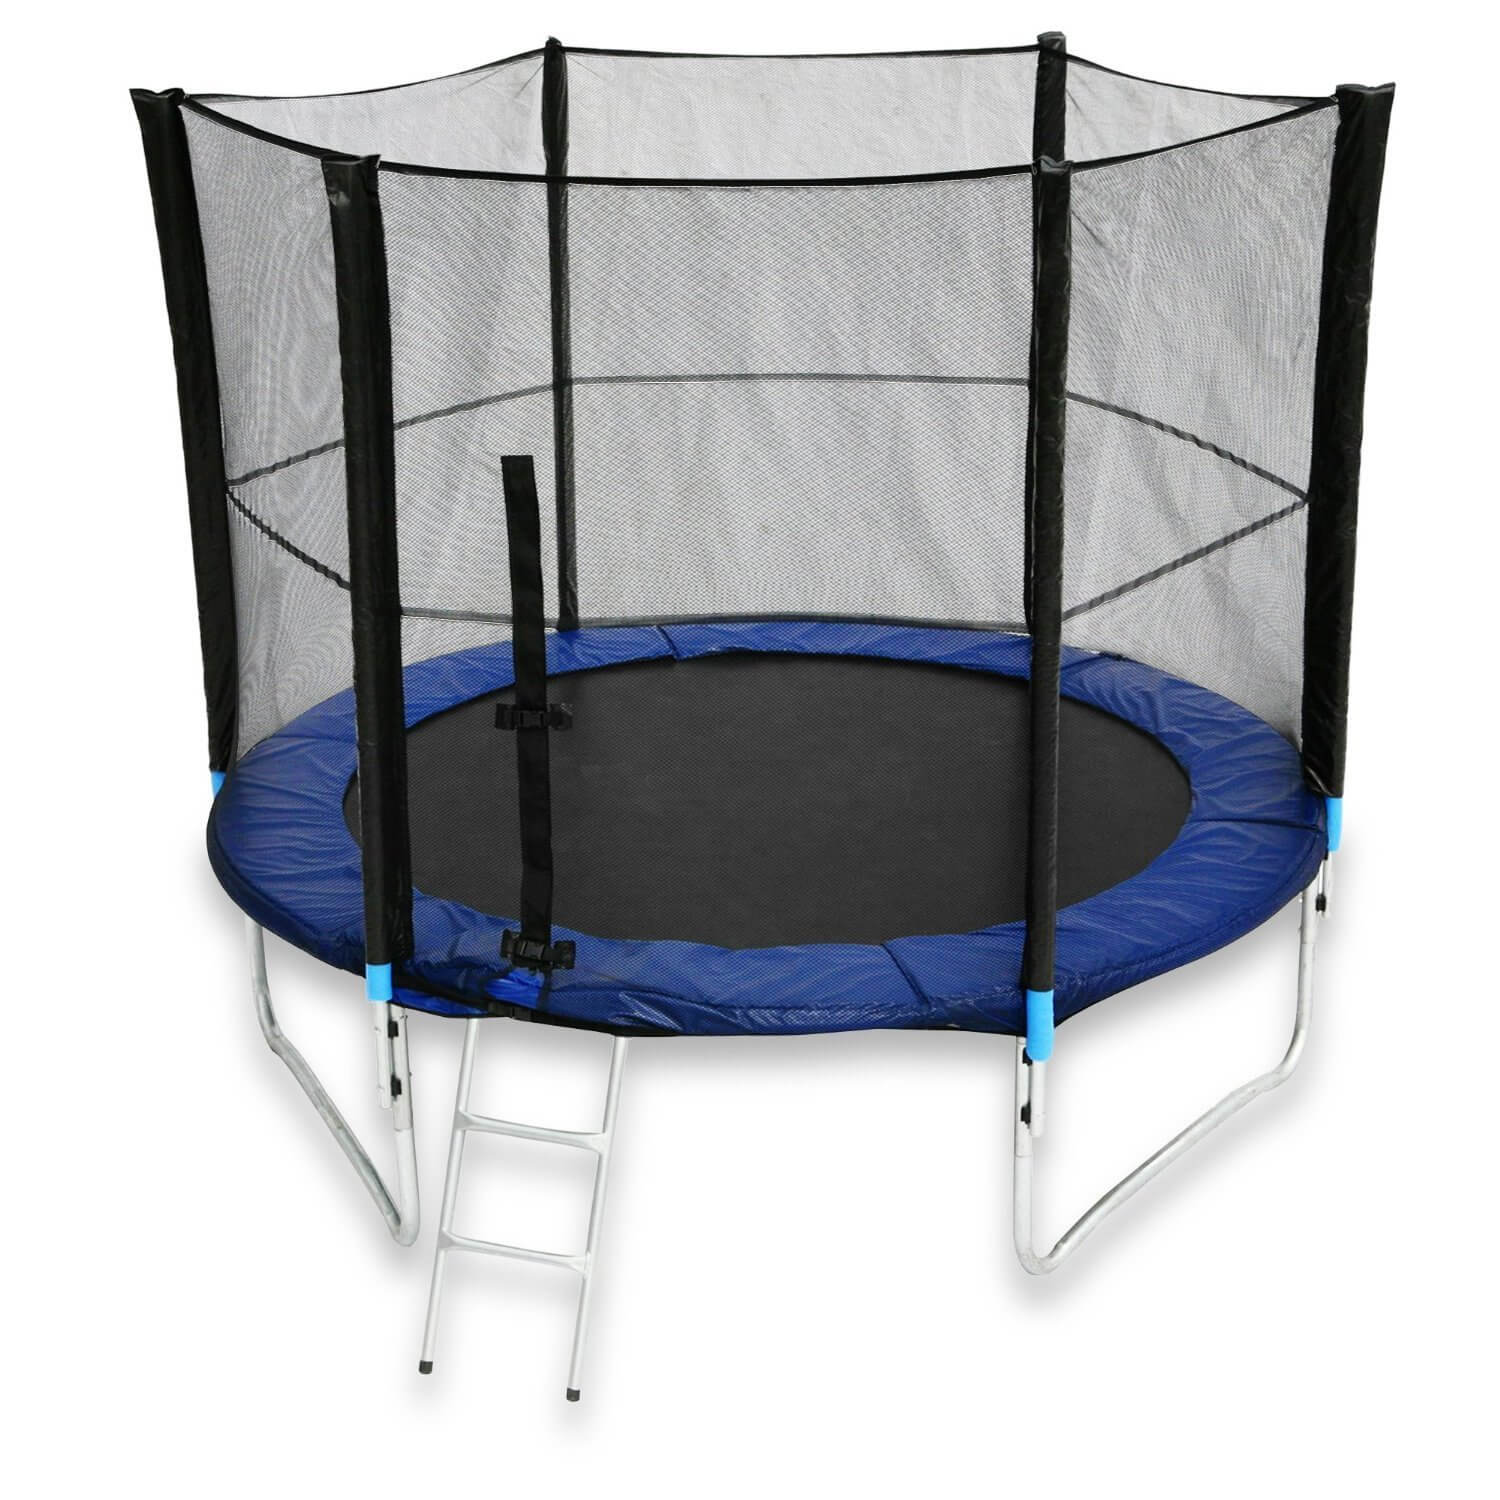 Best 10ft Trampoline Top 3 In 2018 2019